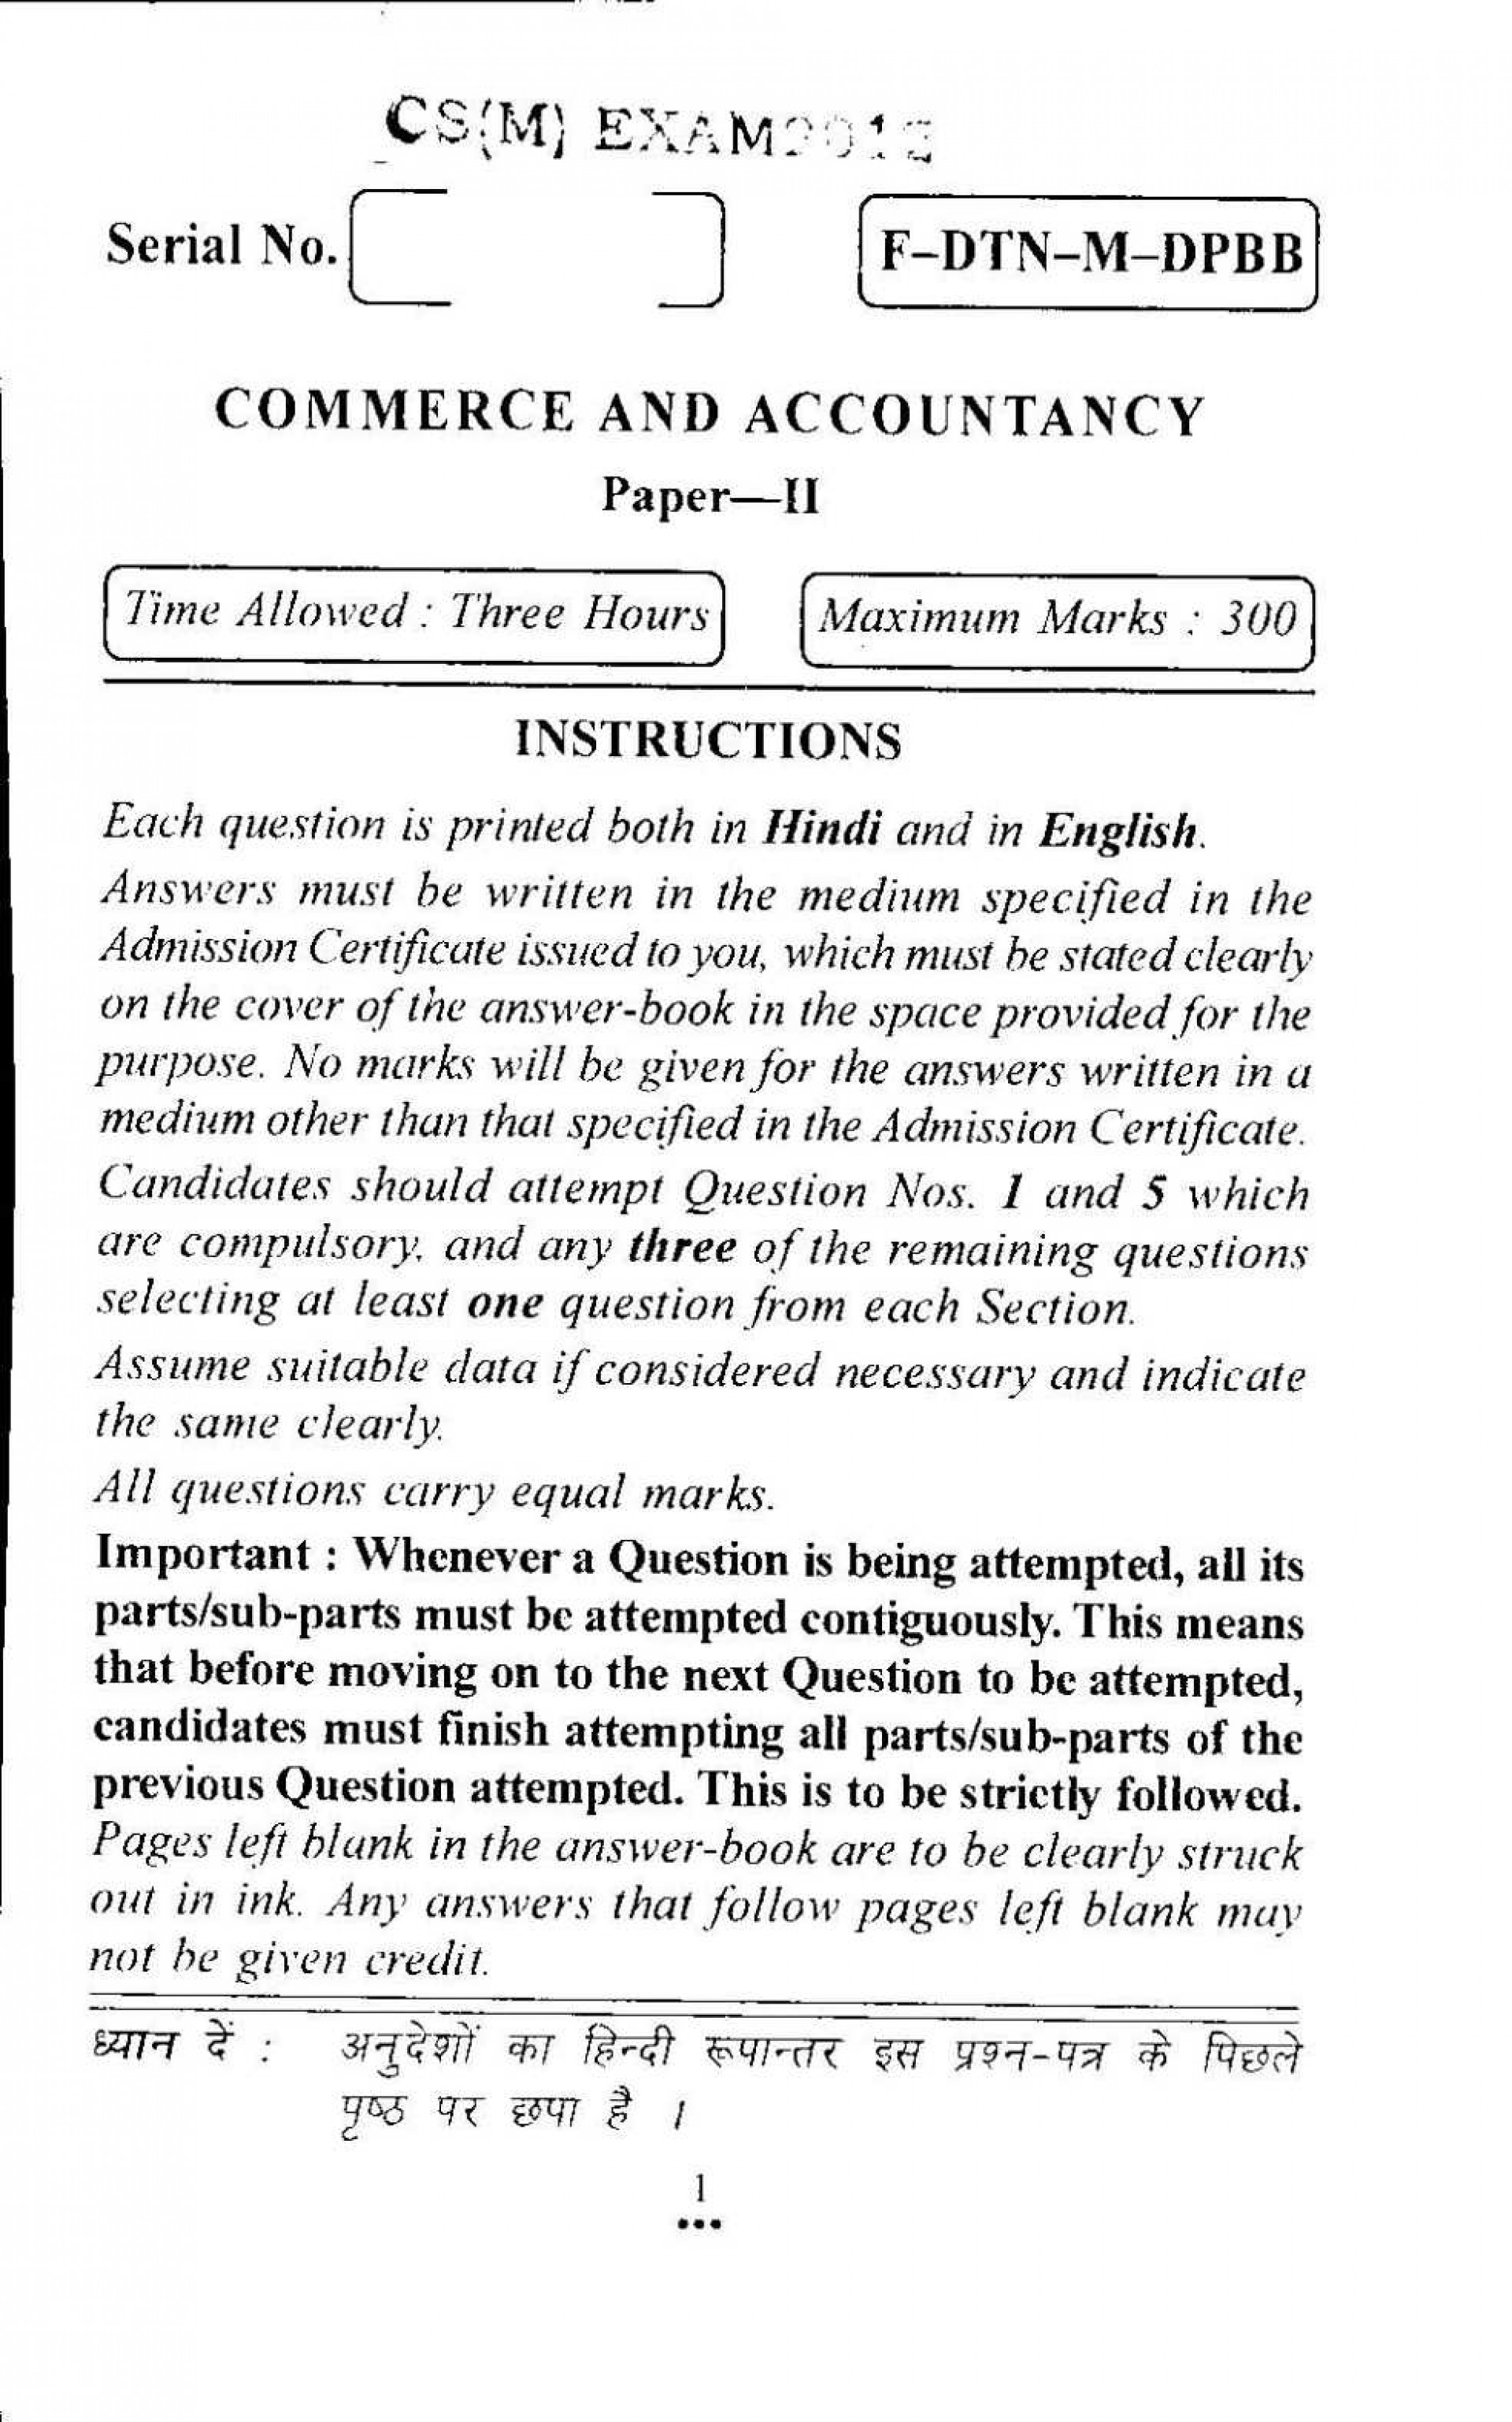 011 Civil Services Examination Commerce And Accountancy Paper Ii Previous Years Que Essay Example Marvelous Racism Racial Issues Topics Hook 1920